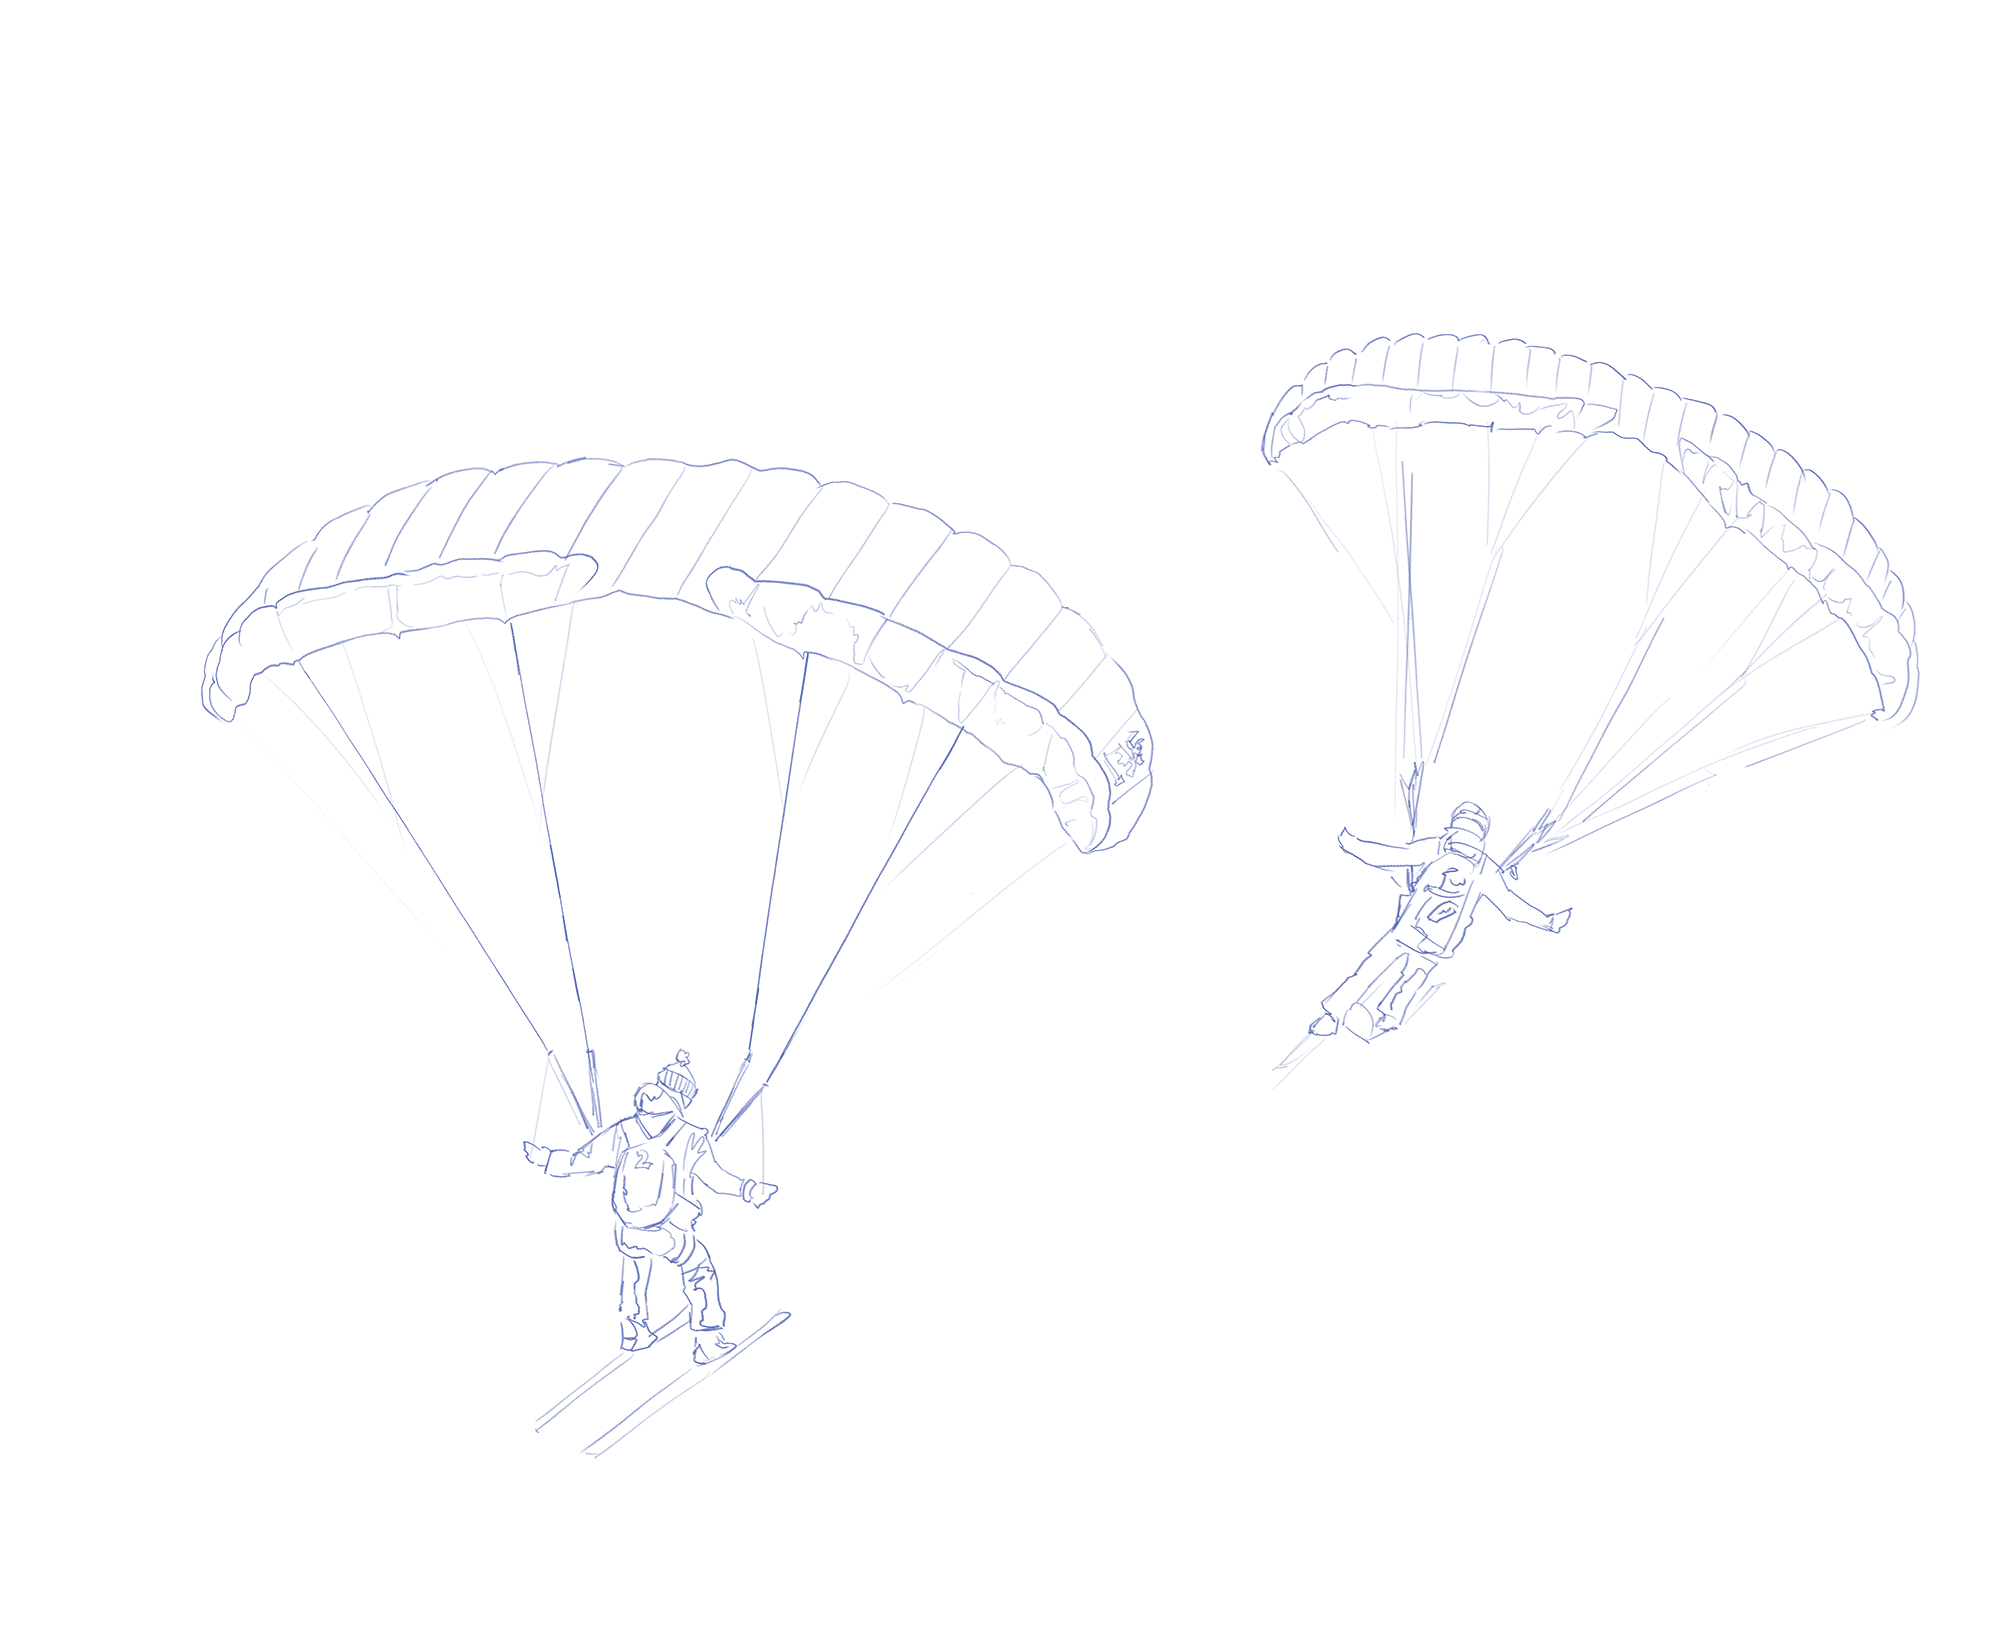 Some sketched ski fliers which follow the mouse movement as you move your cursor